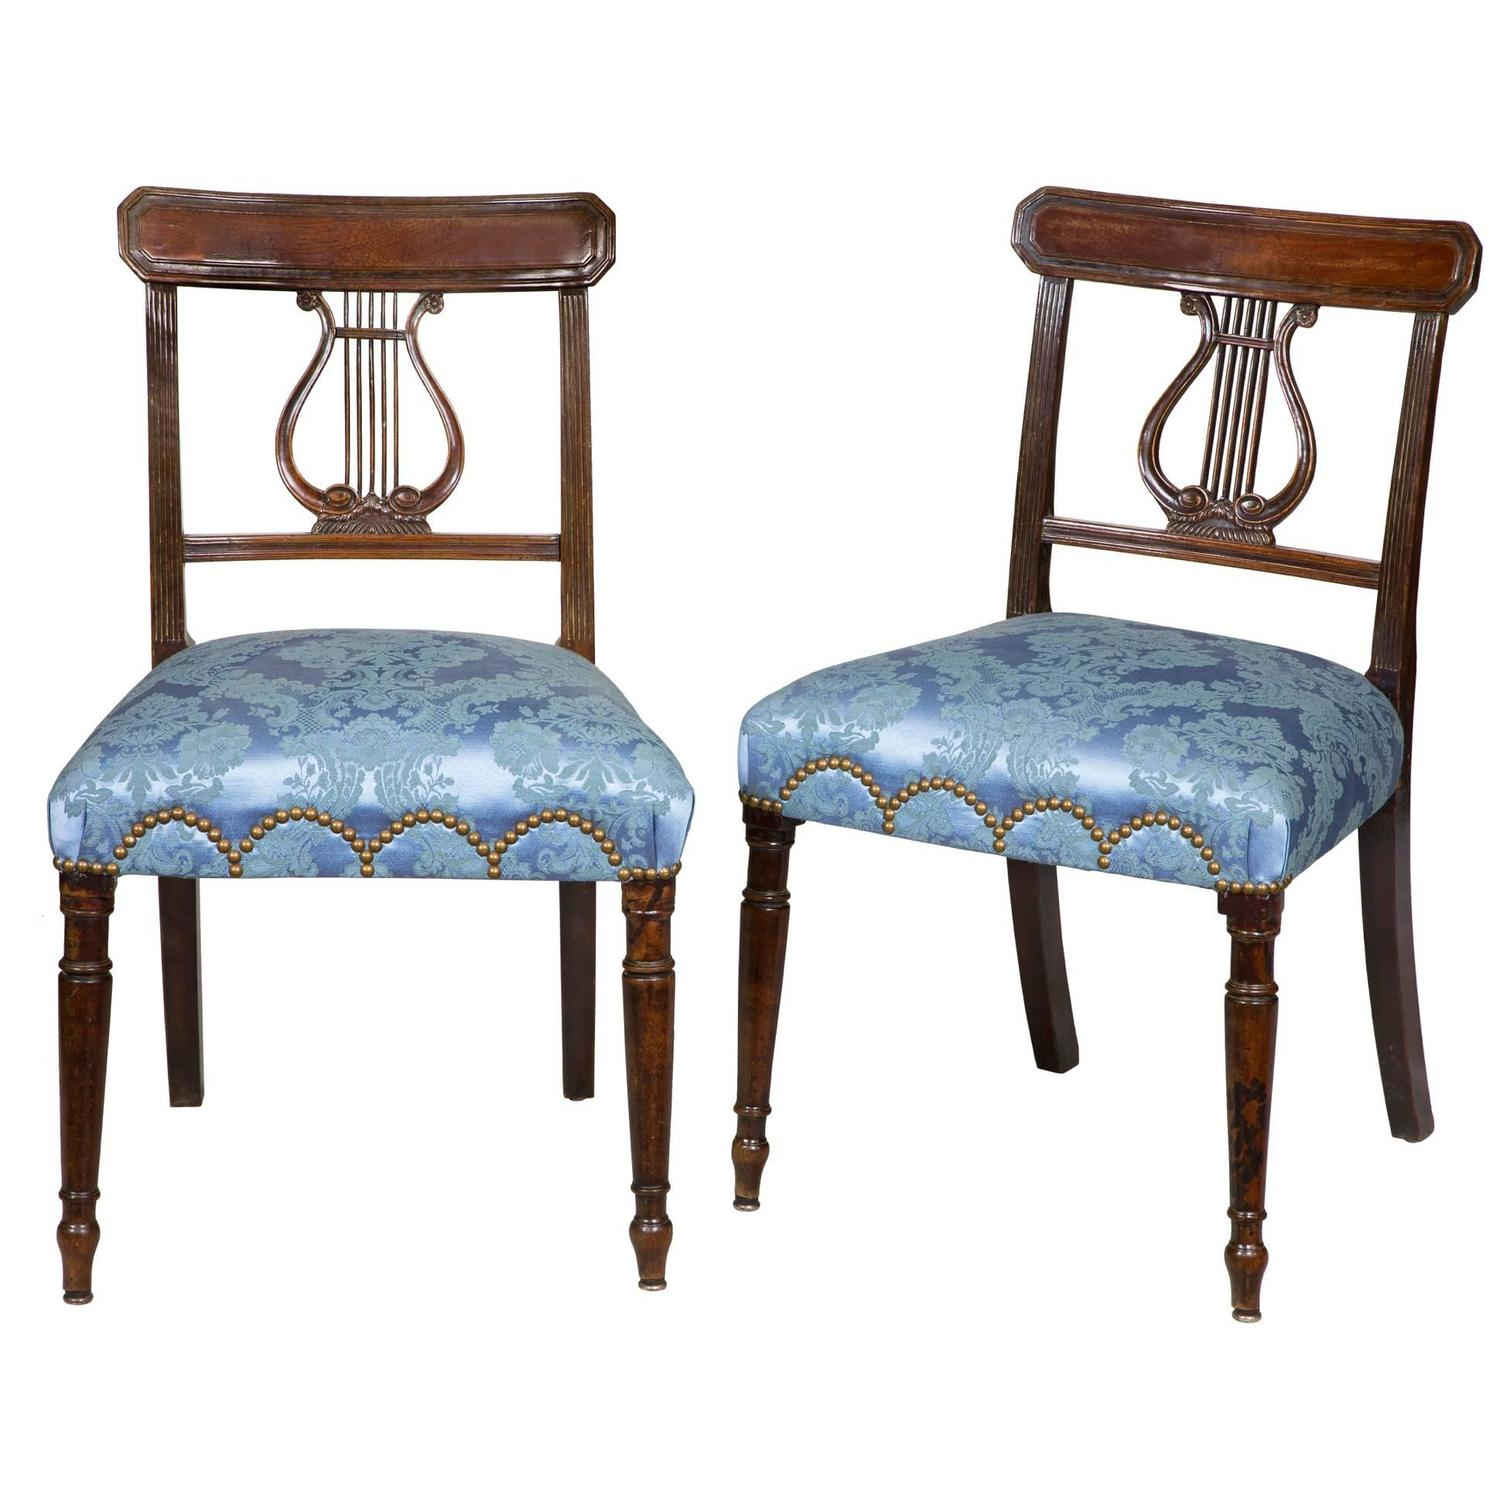 Pair Of English Lyre Back Regency Side Chairs, Circa 1810 At 1stdibs